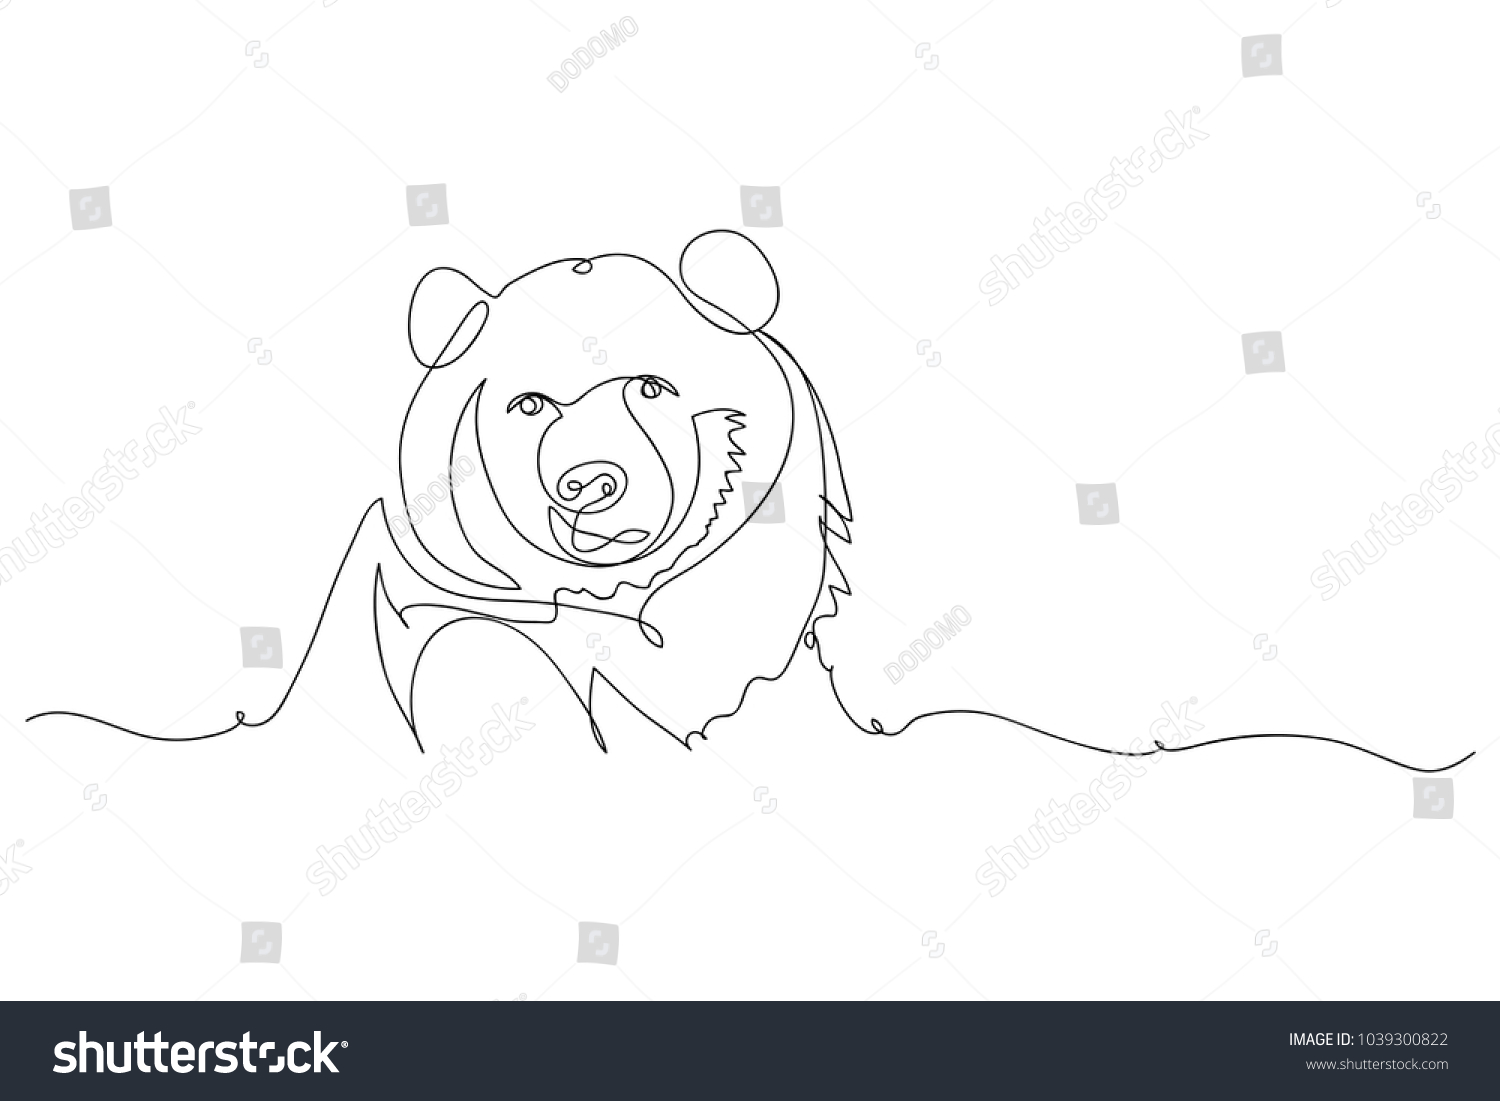 Vector Line Art Animals : Continuous line drawing bears wild animals stock vector royalty